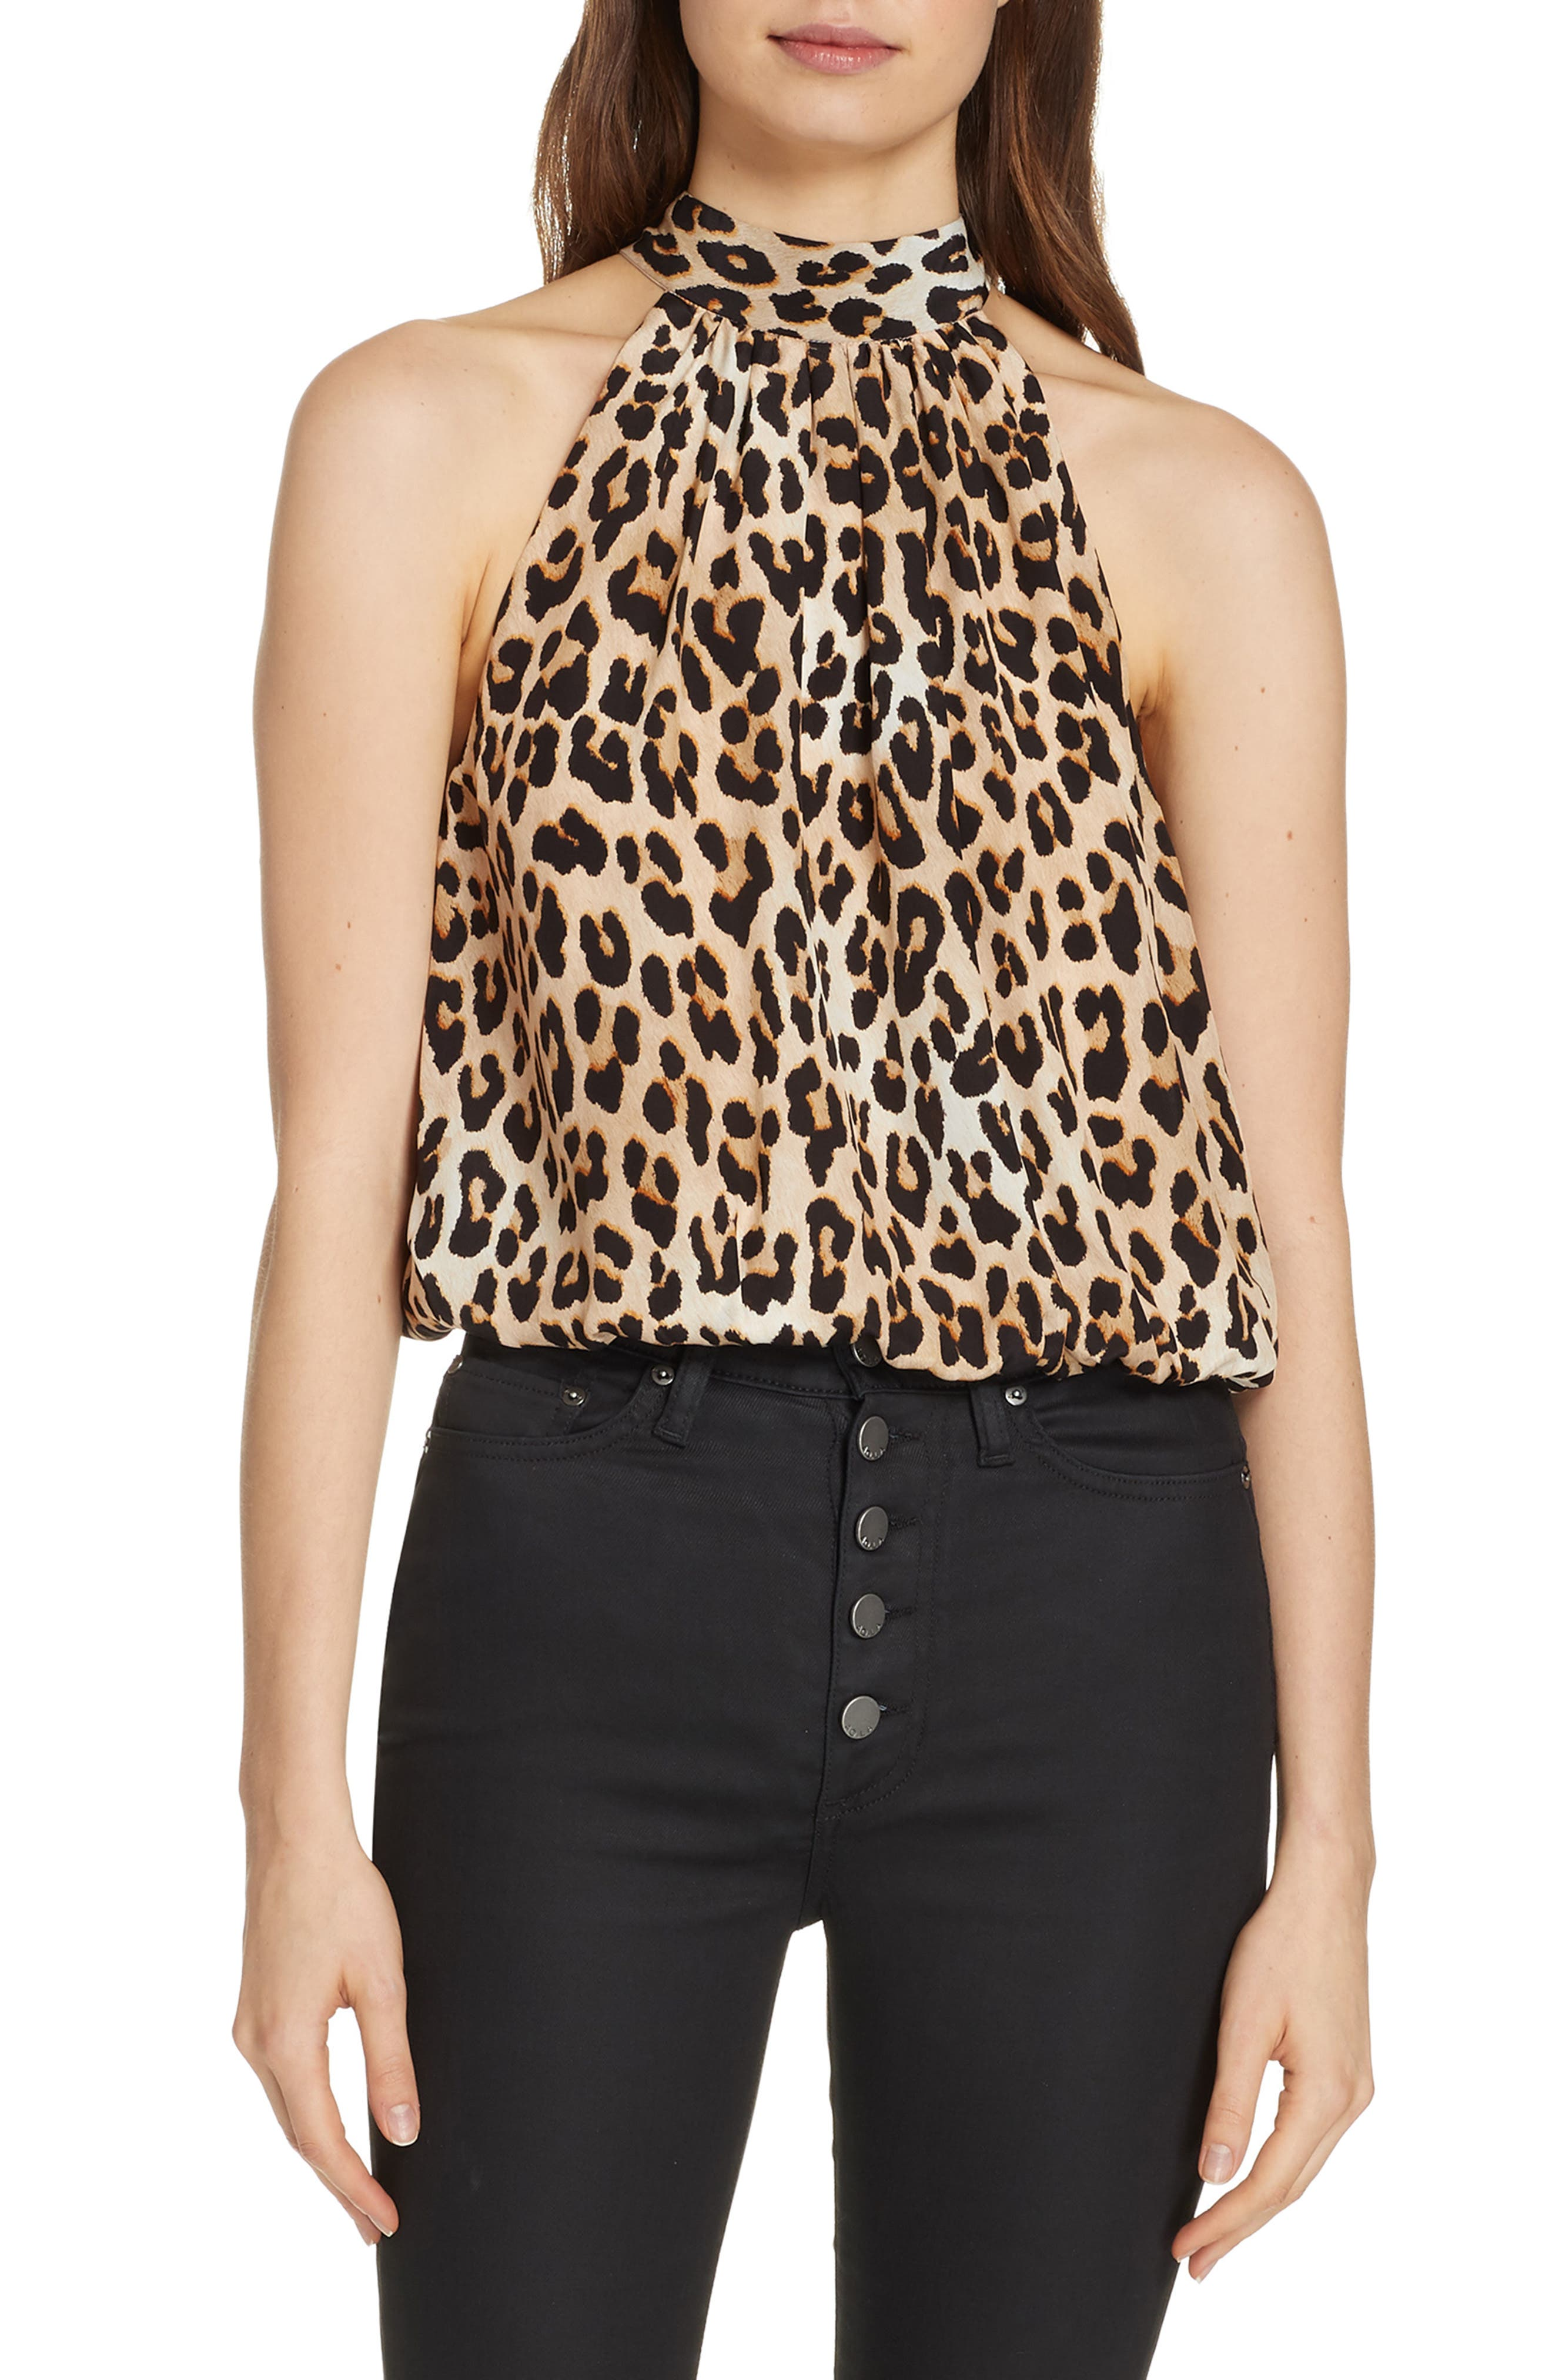 ALICE + OLIVIA, Maris Tie Back Top, Main thumbnail 1, color, 250